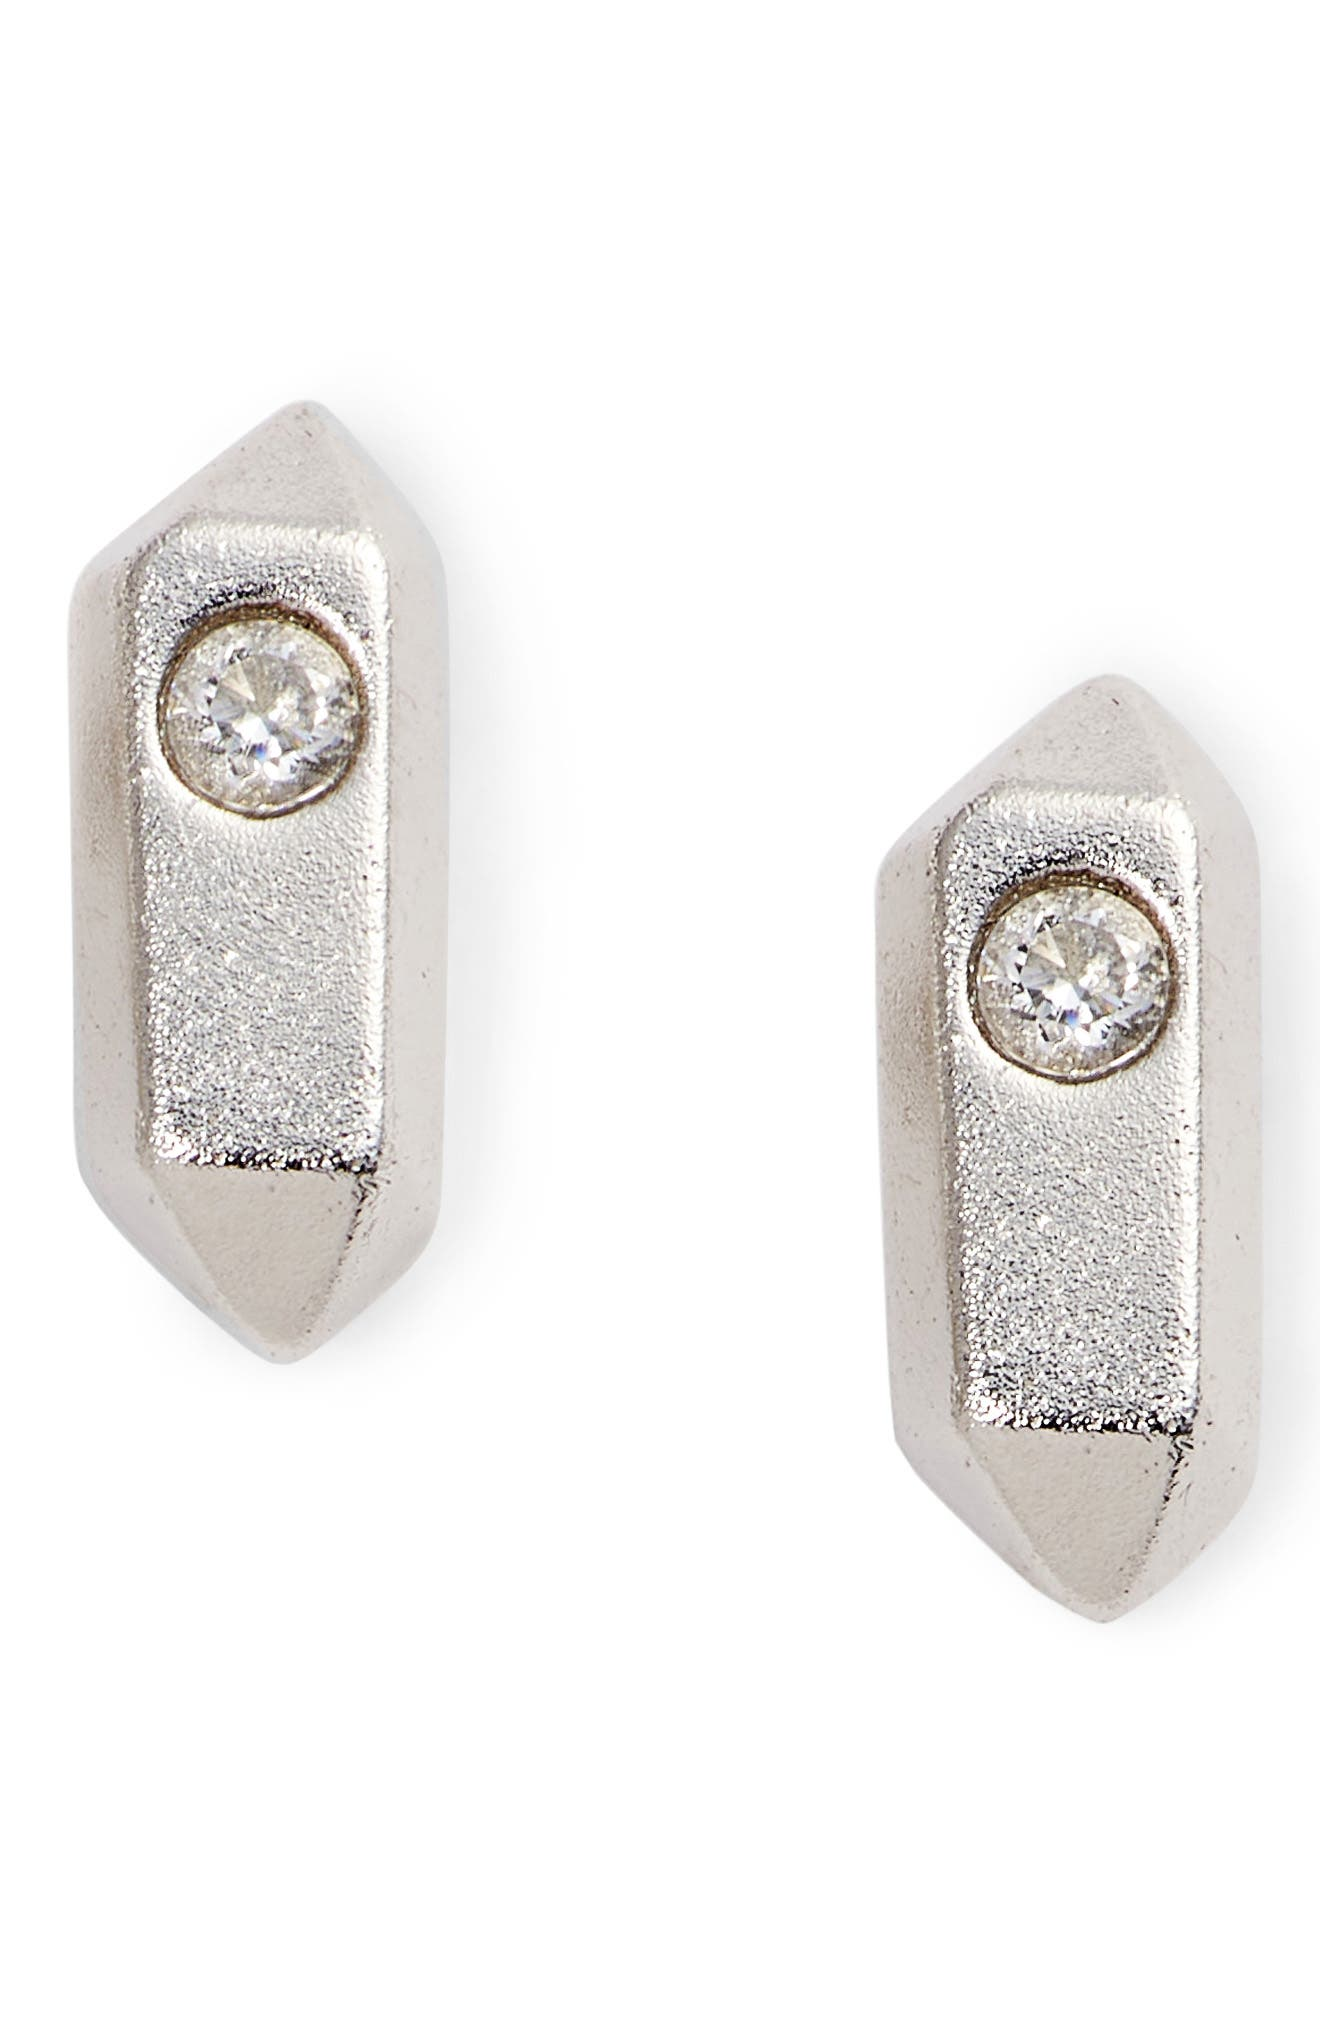 Rooney Stud Earrings,                         Main,                         color, 040